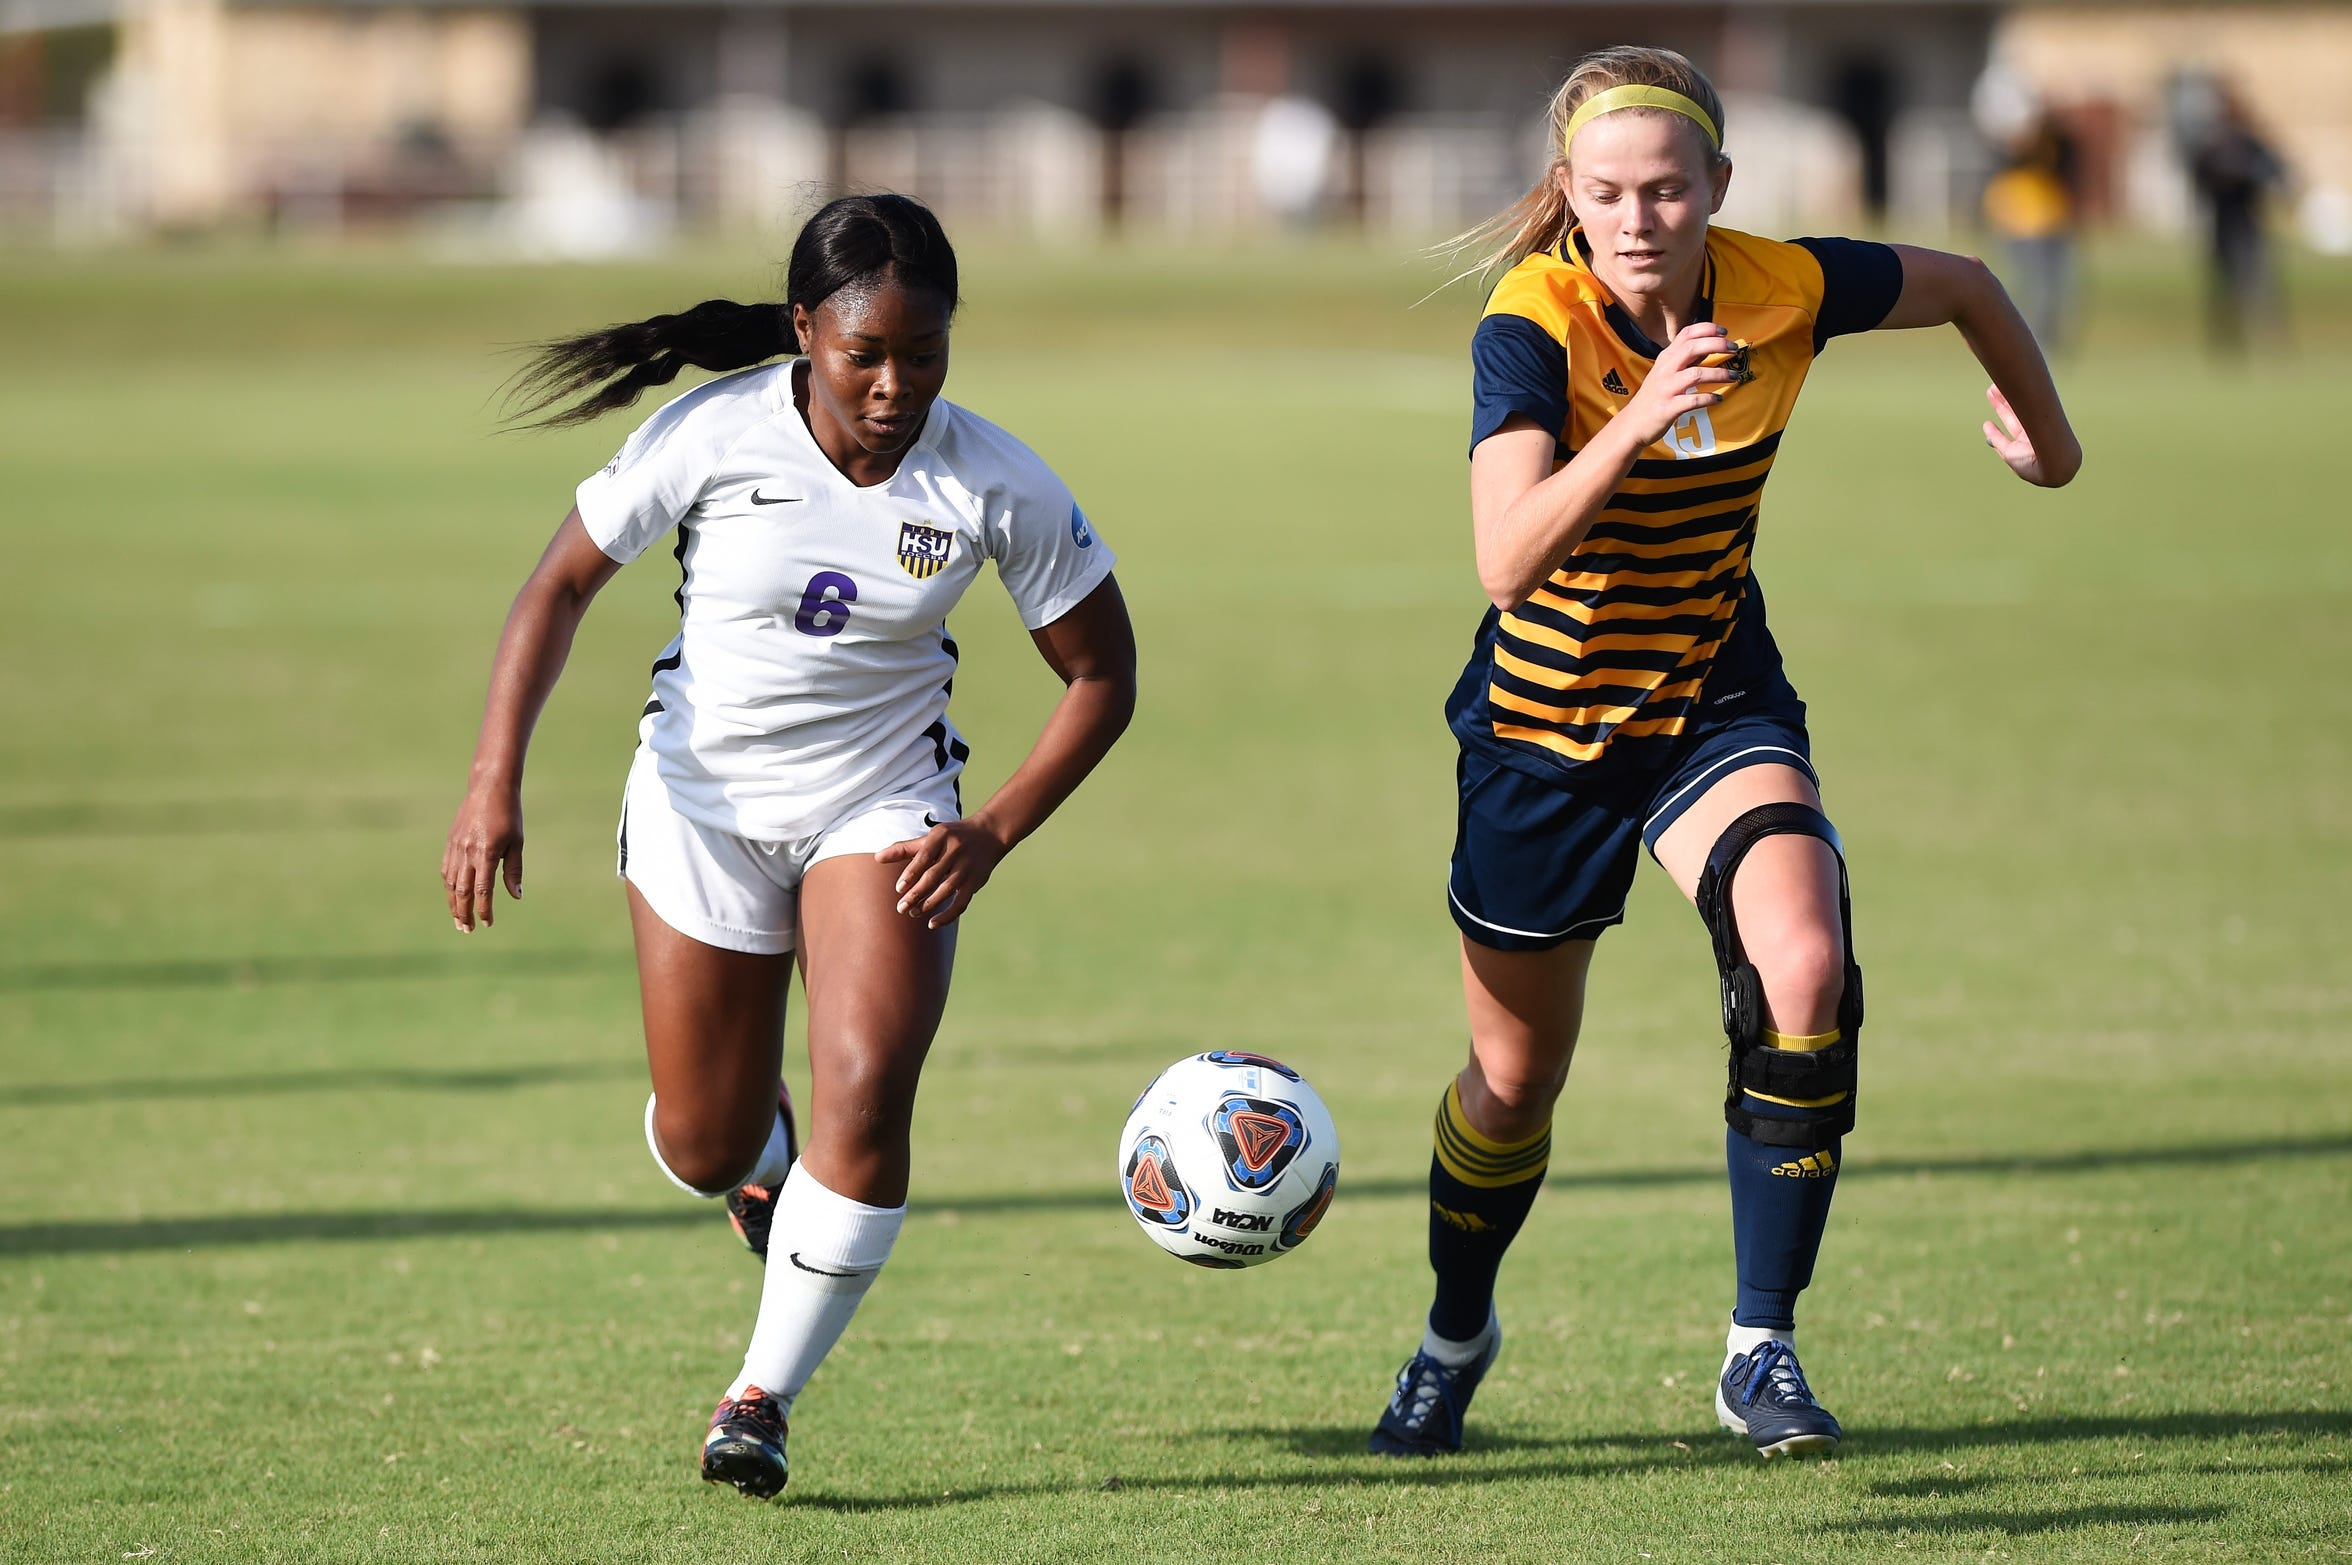 Hardin-Simmons forward Finda Kollie (6) has made the transition from Abilene High to college soccer well. Kollie played in all 18 HSU games this season and will be a key for the Cowgirls entering the NCAA tournament.